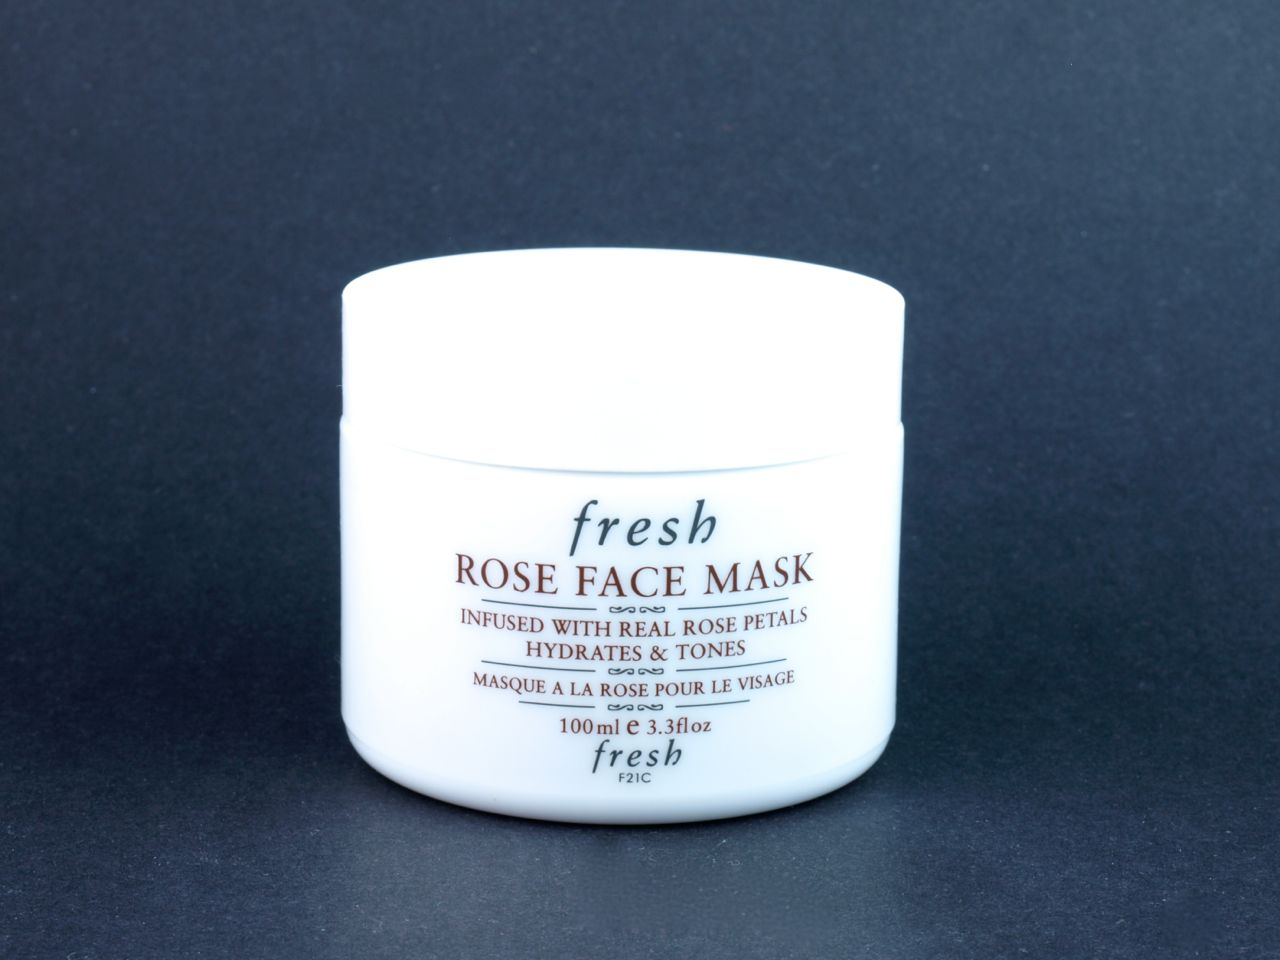 Fresh Rose Face Mask: Review